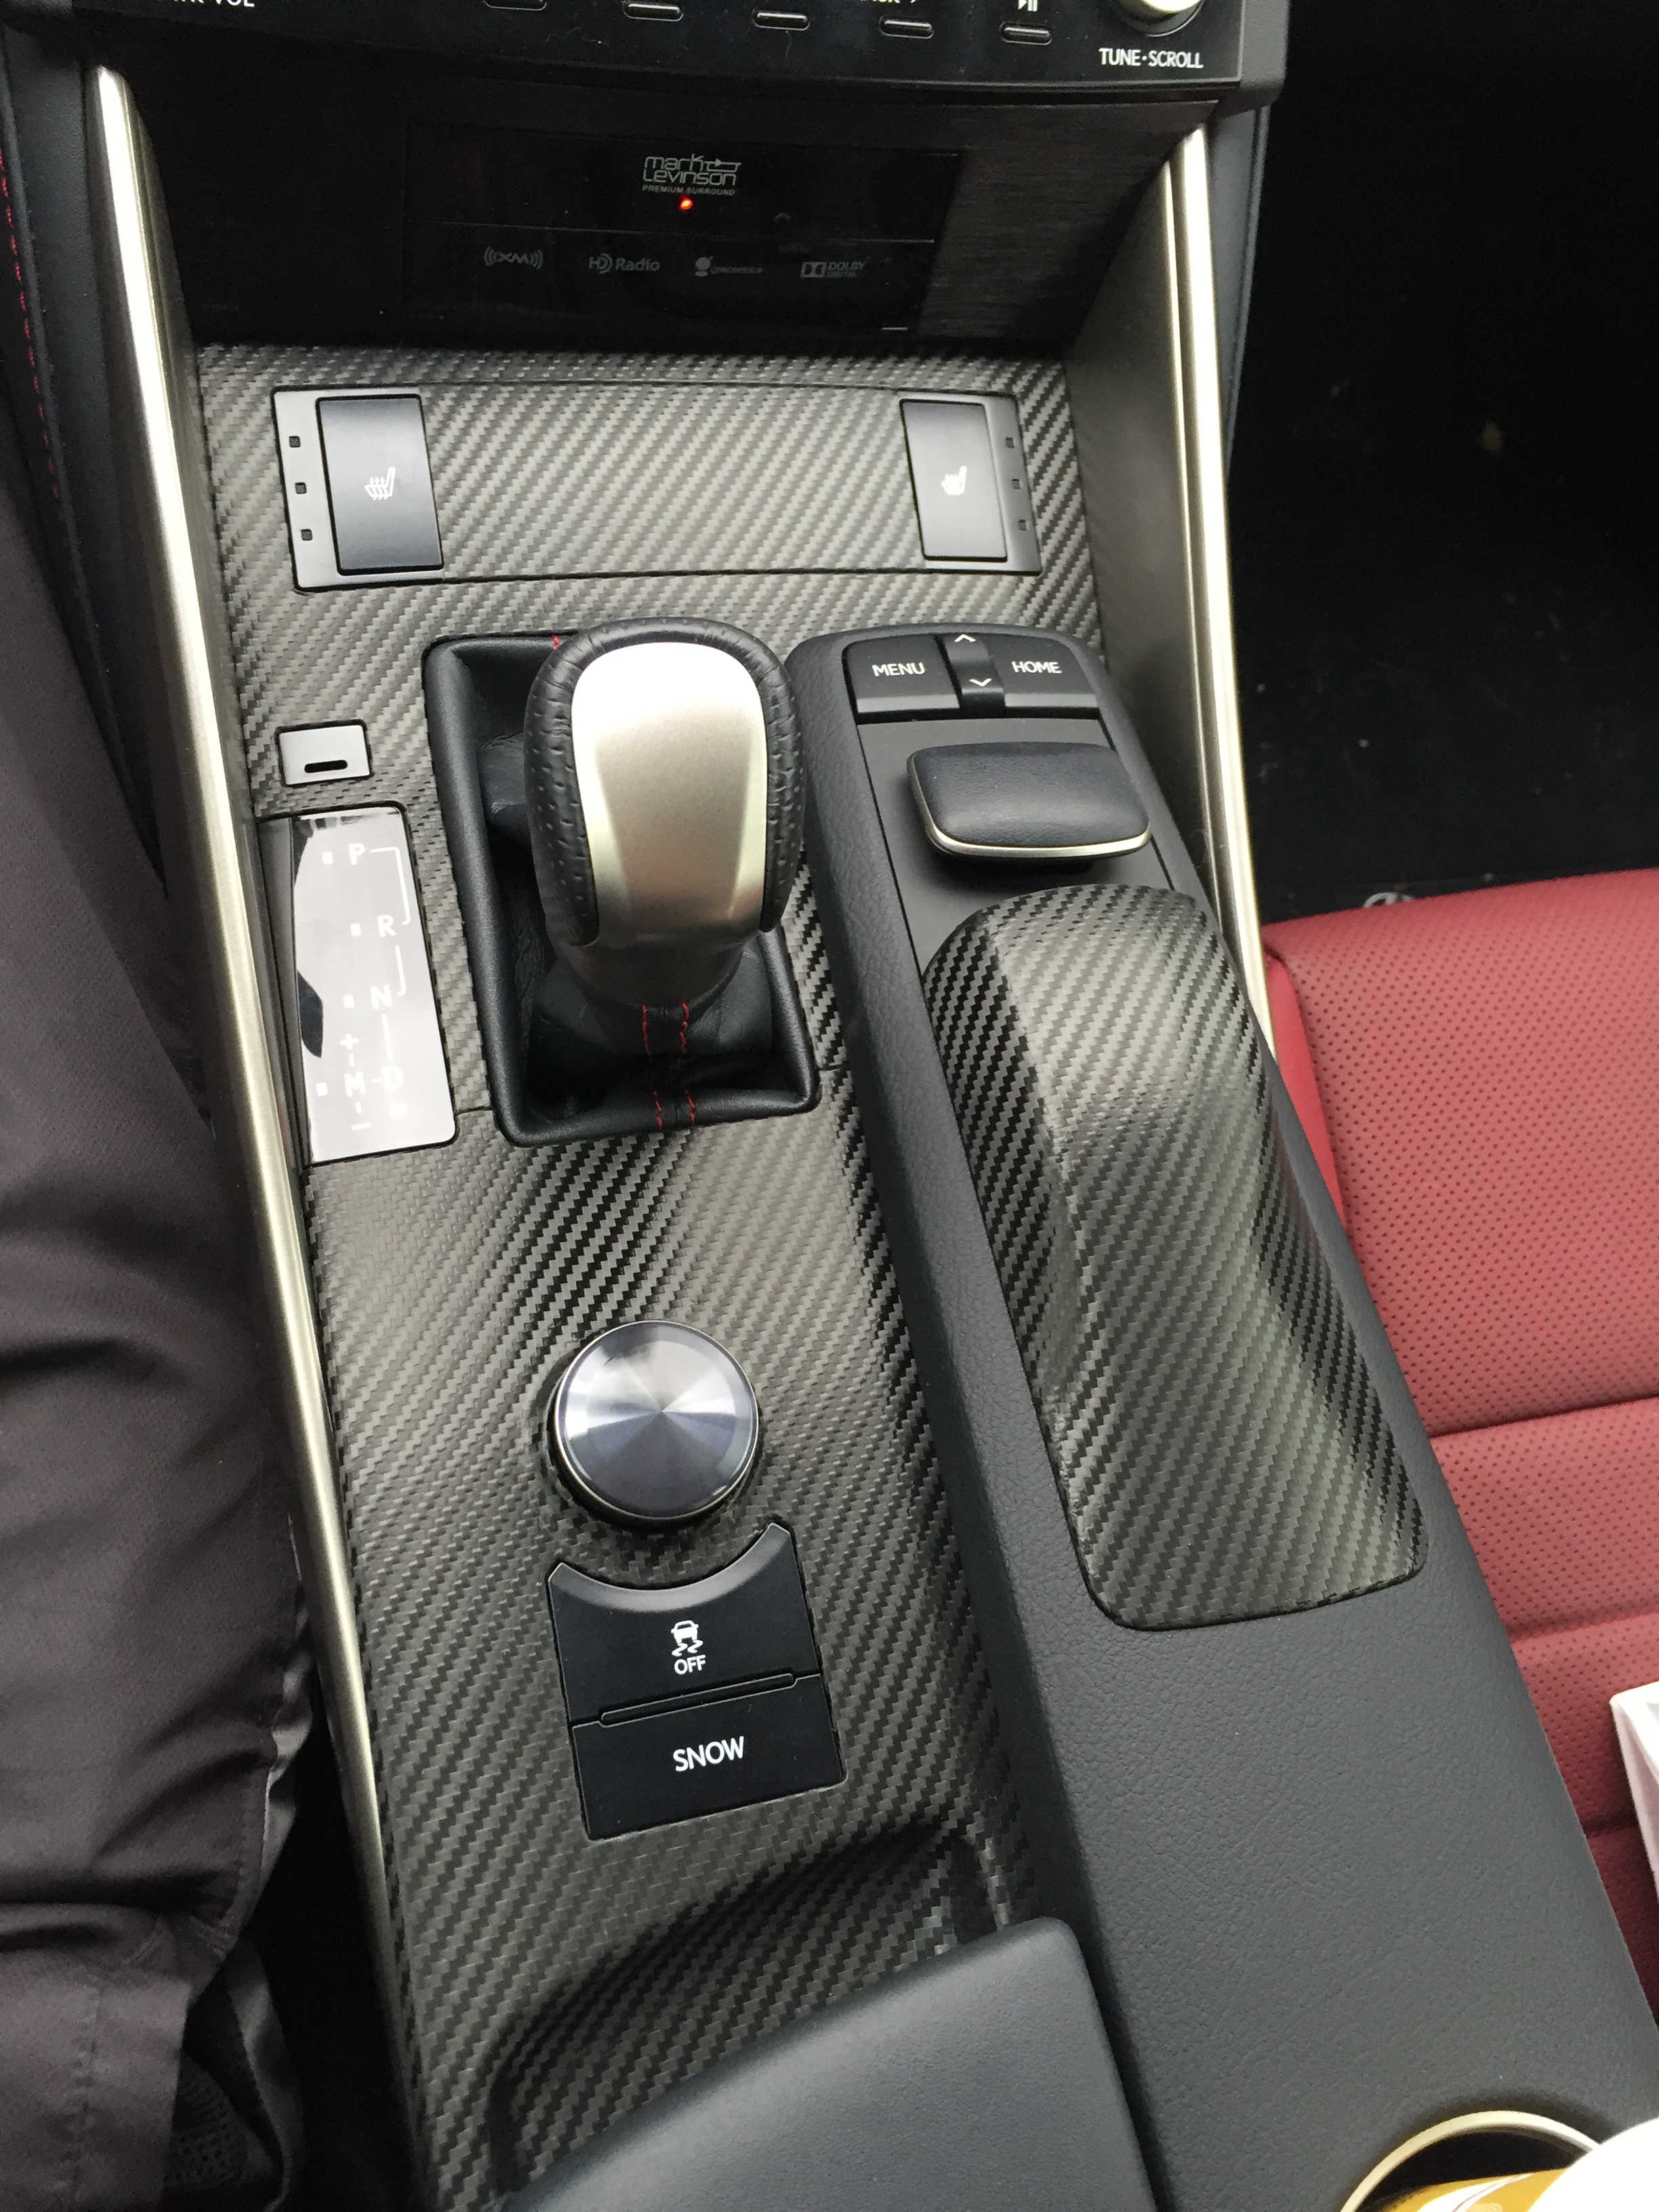 Anyone install carbon fiber wrap for their interior Page 2